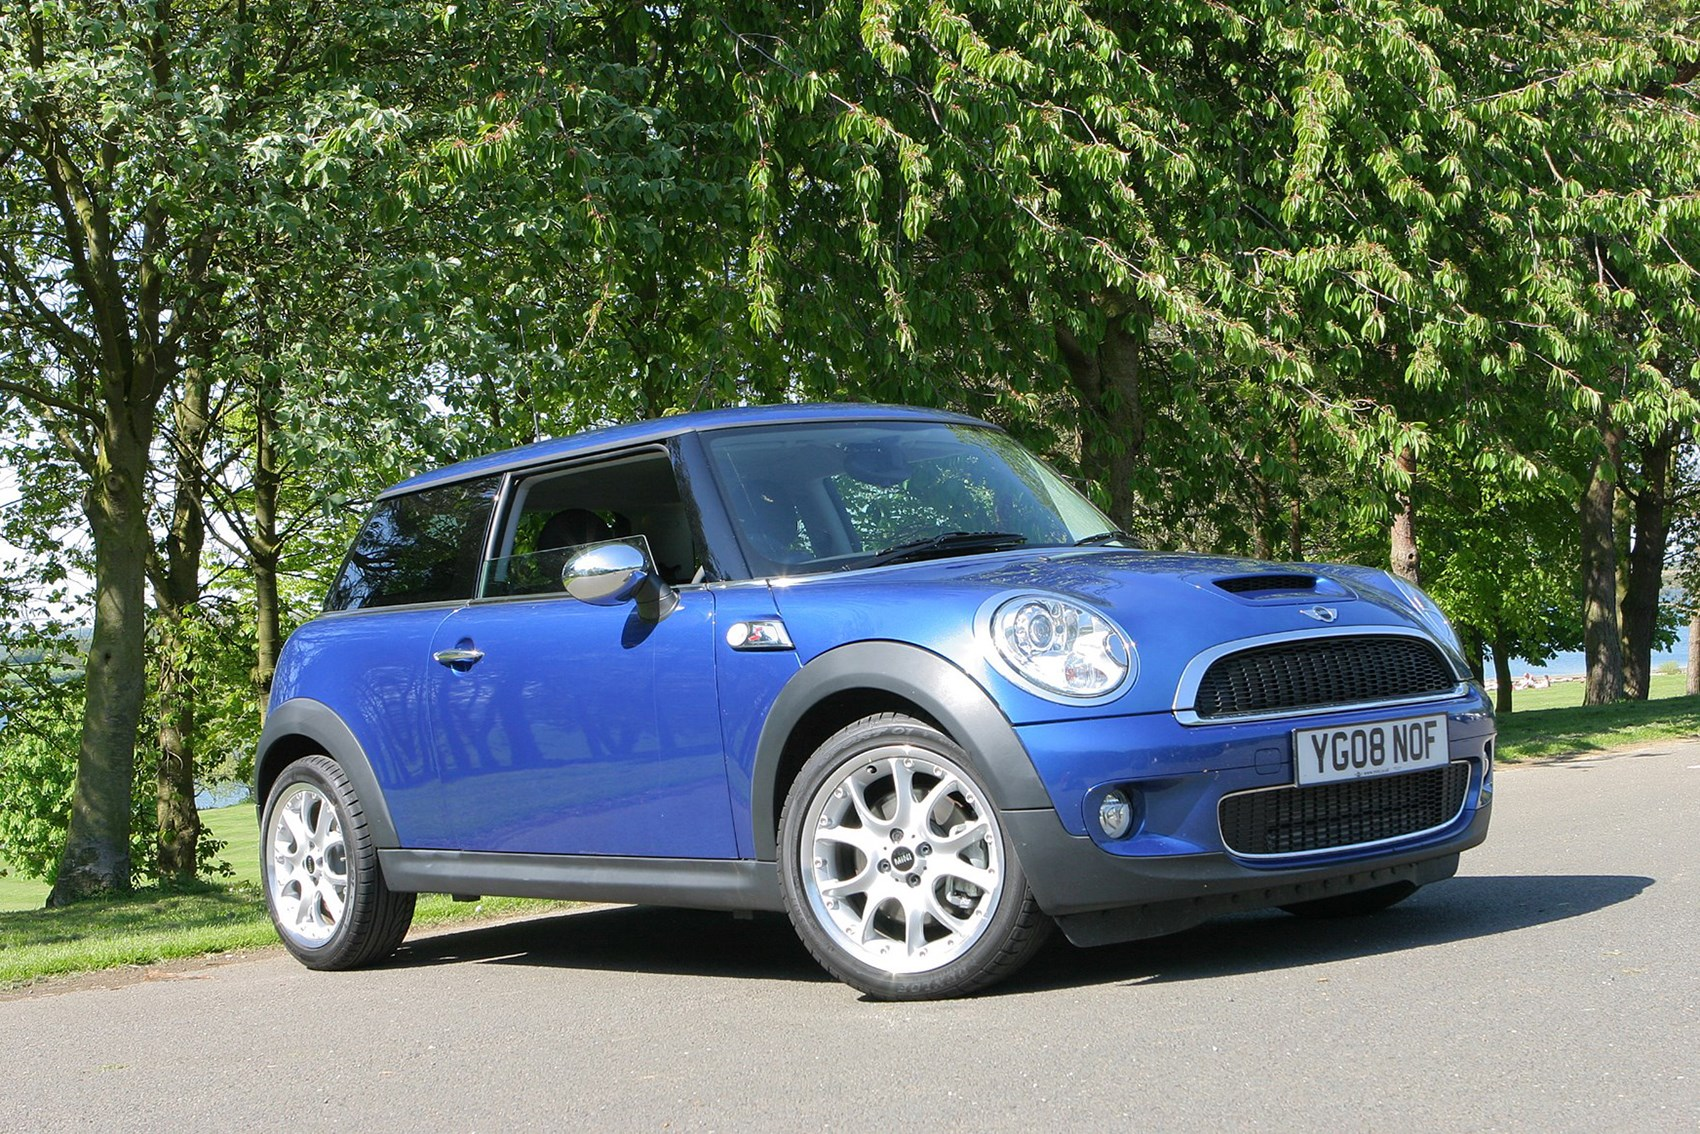 MINI Cooper S - used hatchbacks for less than £4k